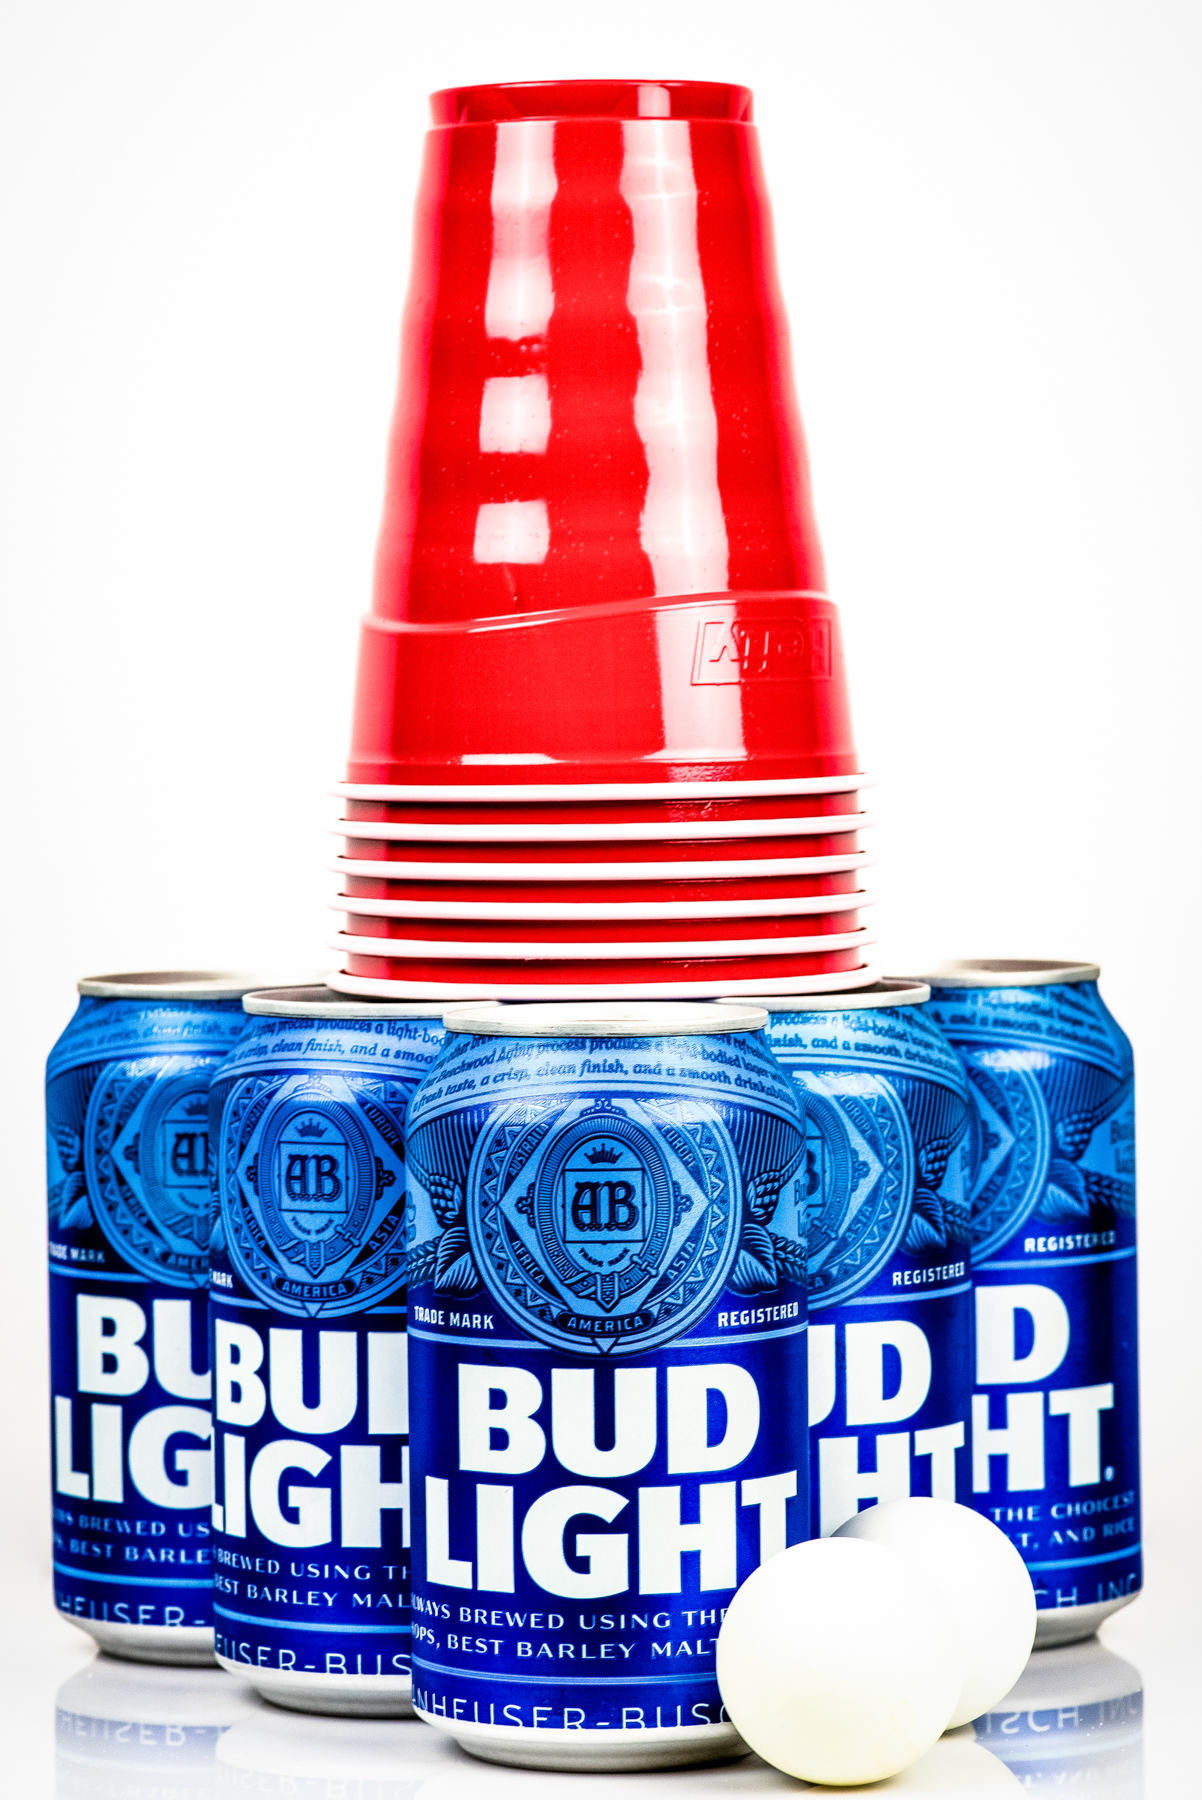 Bud Light Product Photography captured by TOMO Pictures in Charleston, SC